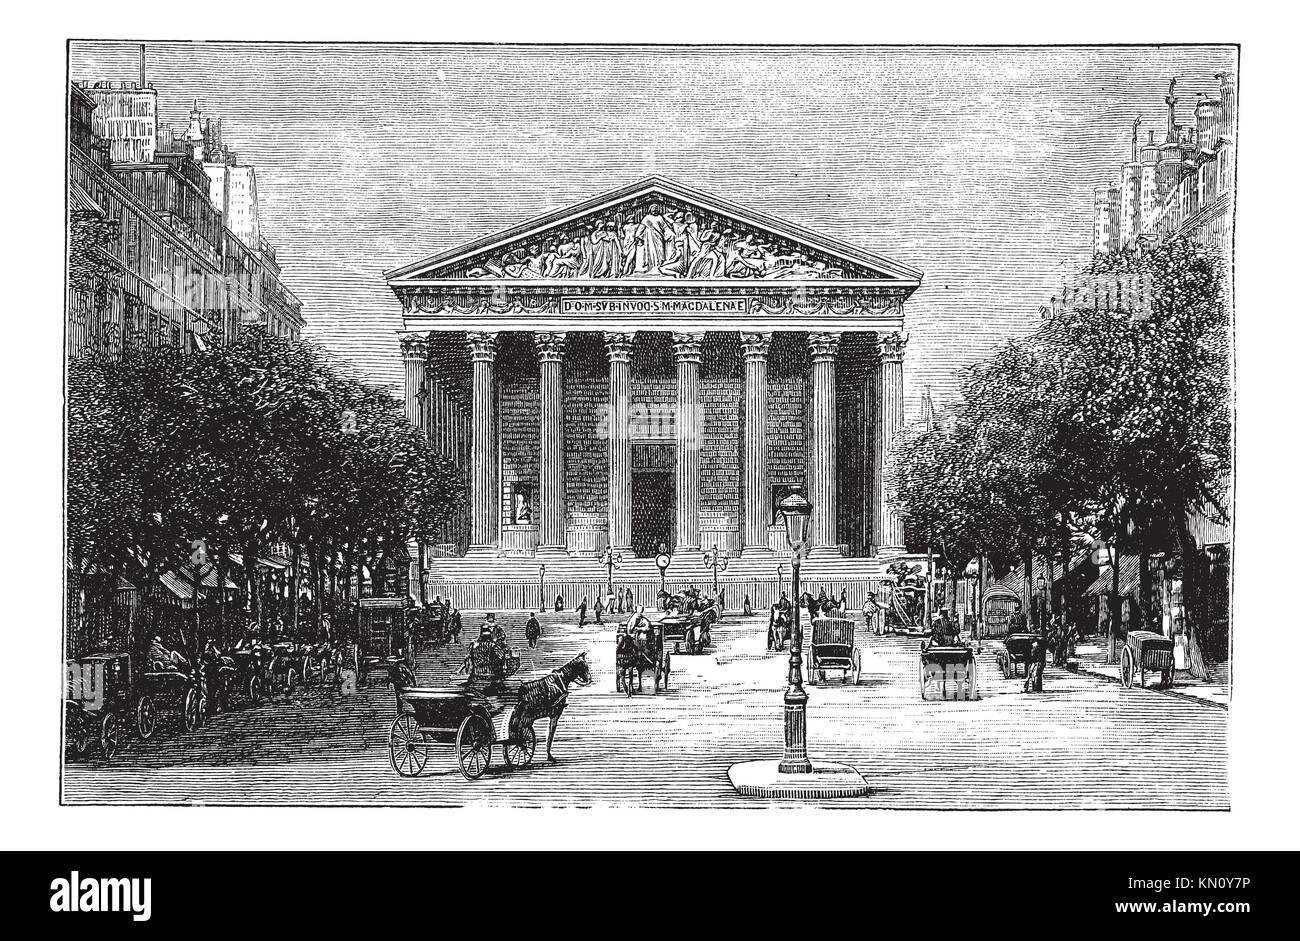 Madeleine Church and Rue Royale in Paris, France, during the 1890s, vintage engraving  Old engraved illustration of Madeleine Church and Rue Royale Stock Photo